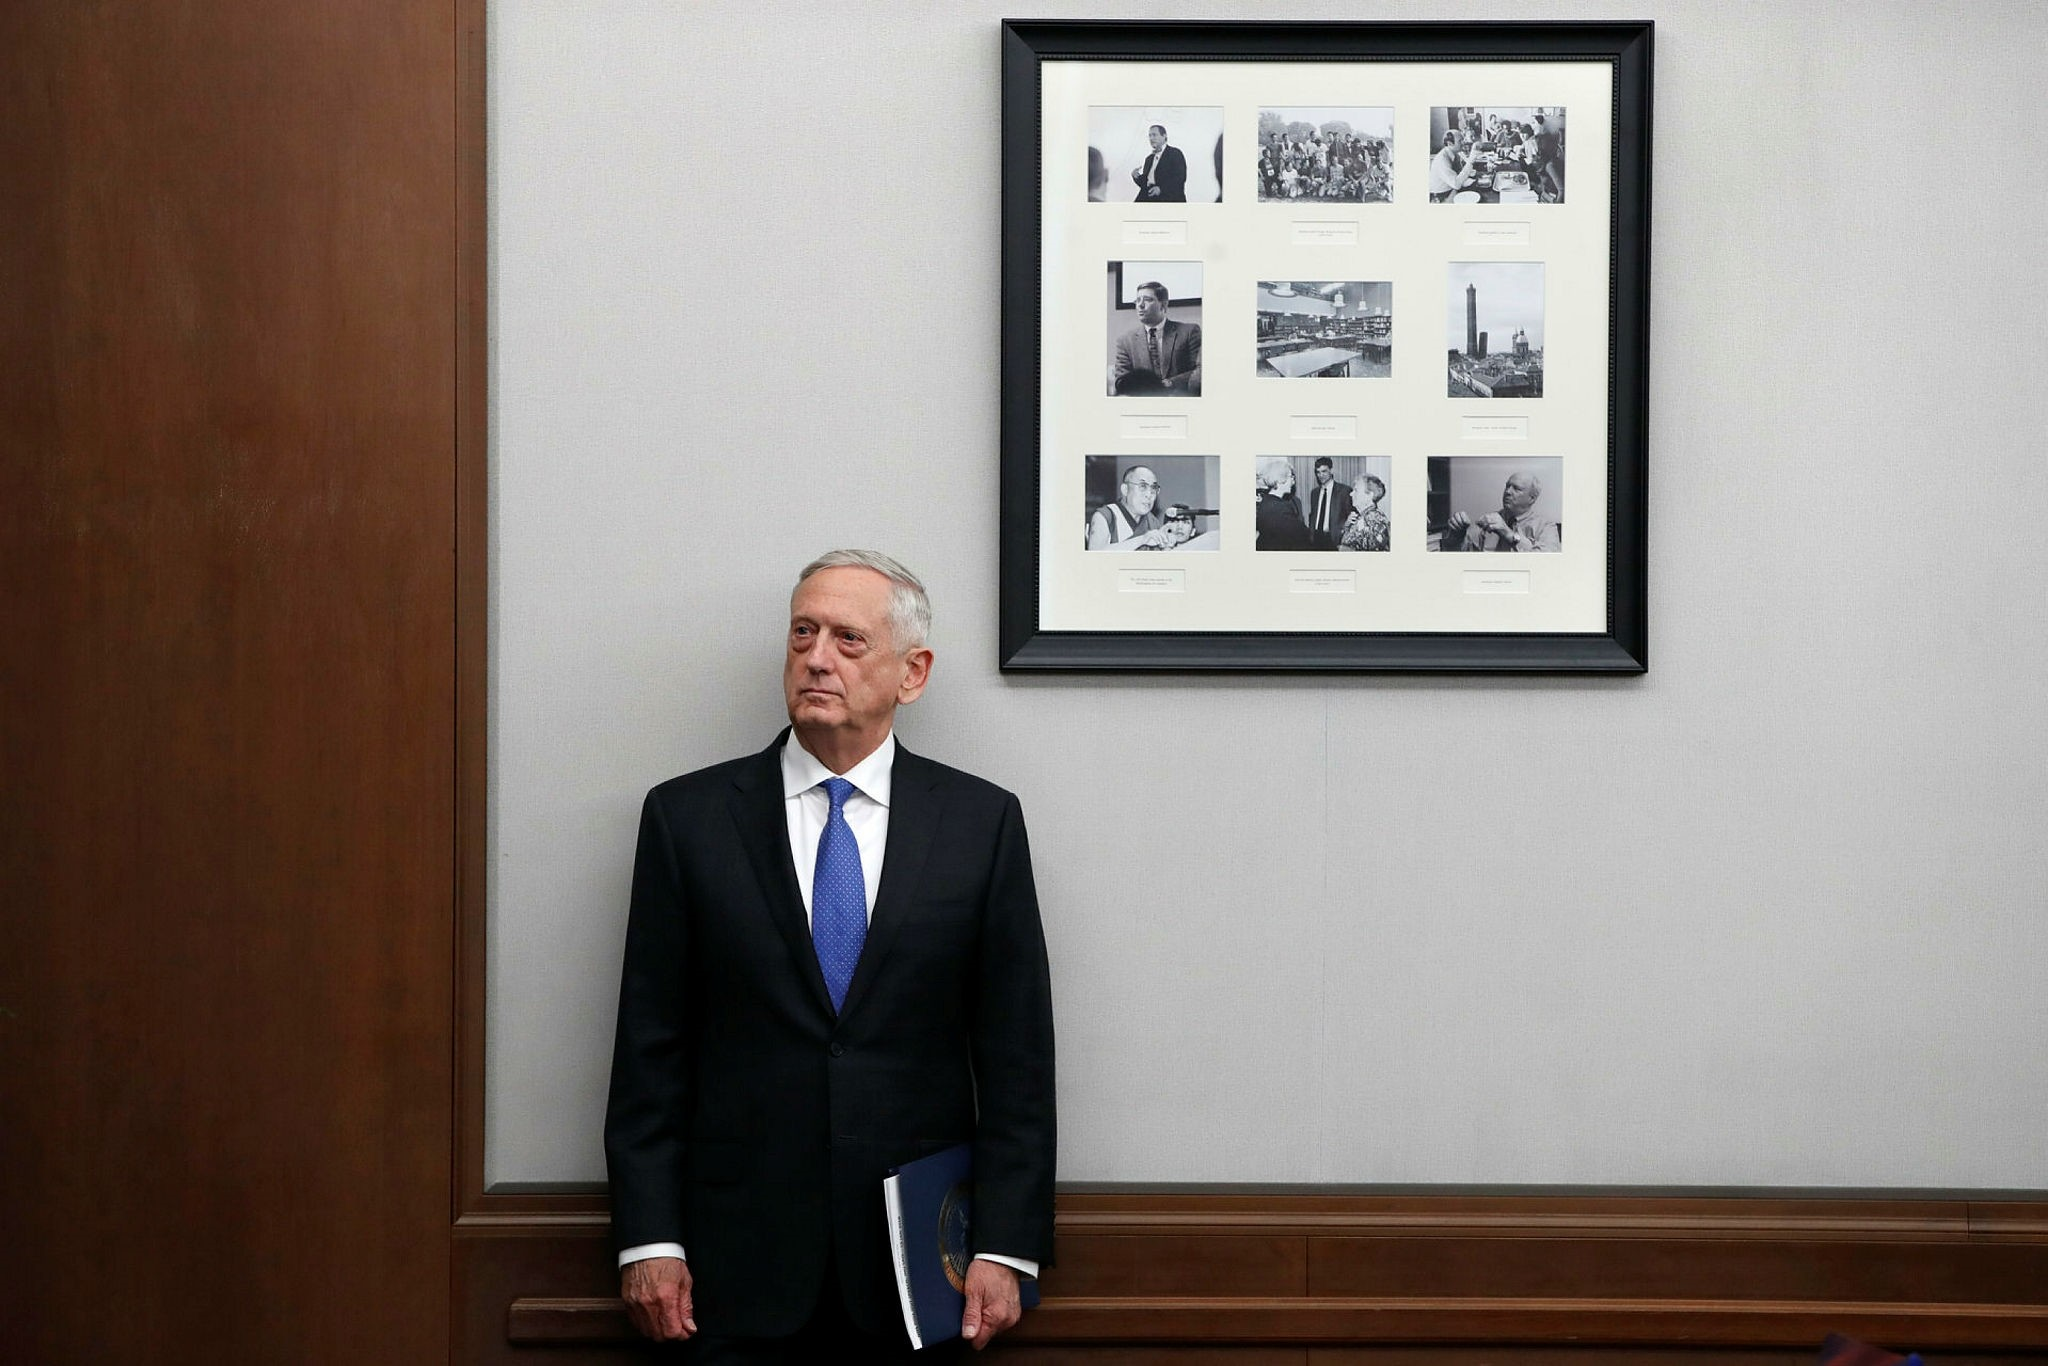 U.S. Defense Secretary James Mattis listens to his introduction before speaking about the National Defense Review, Friday, Jan. 19, 2018, in Washington. (AP Photo)